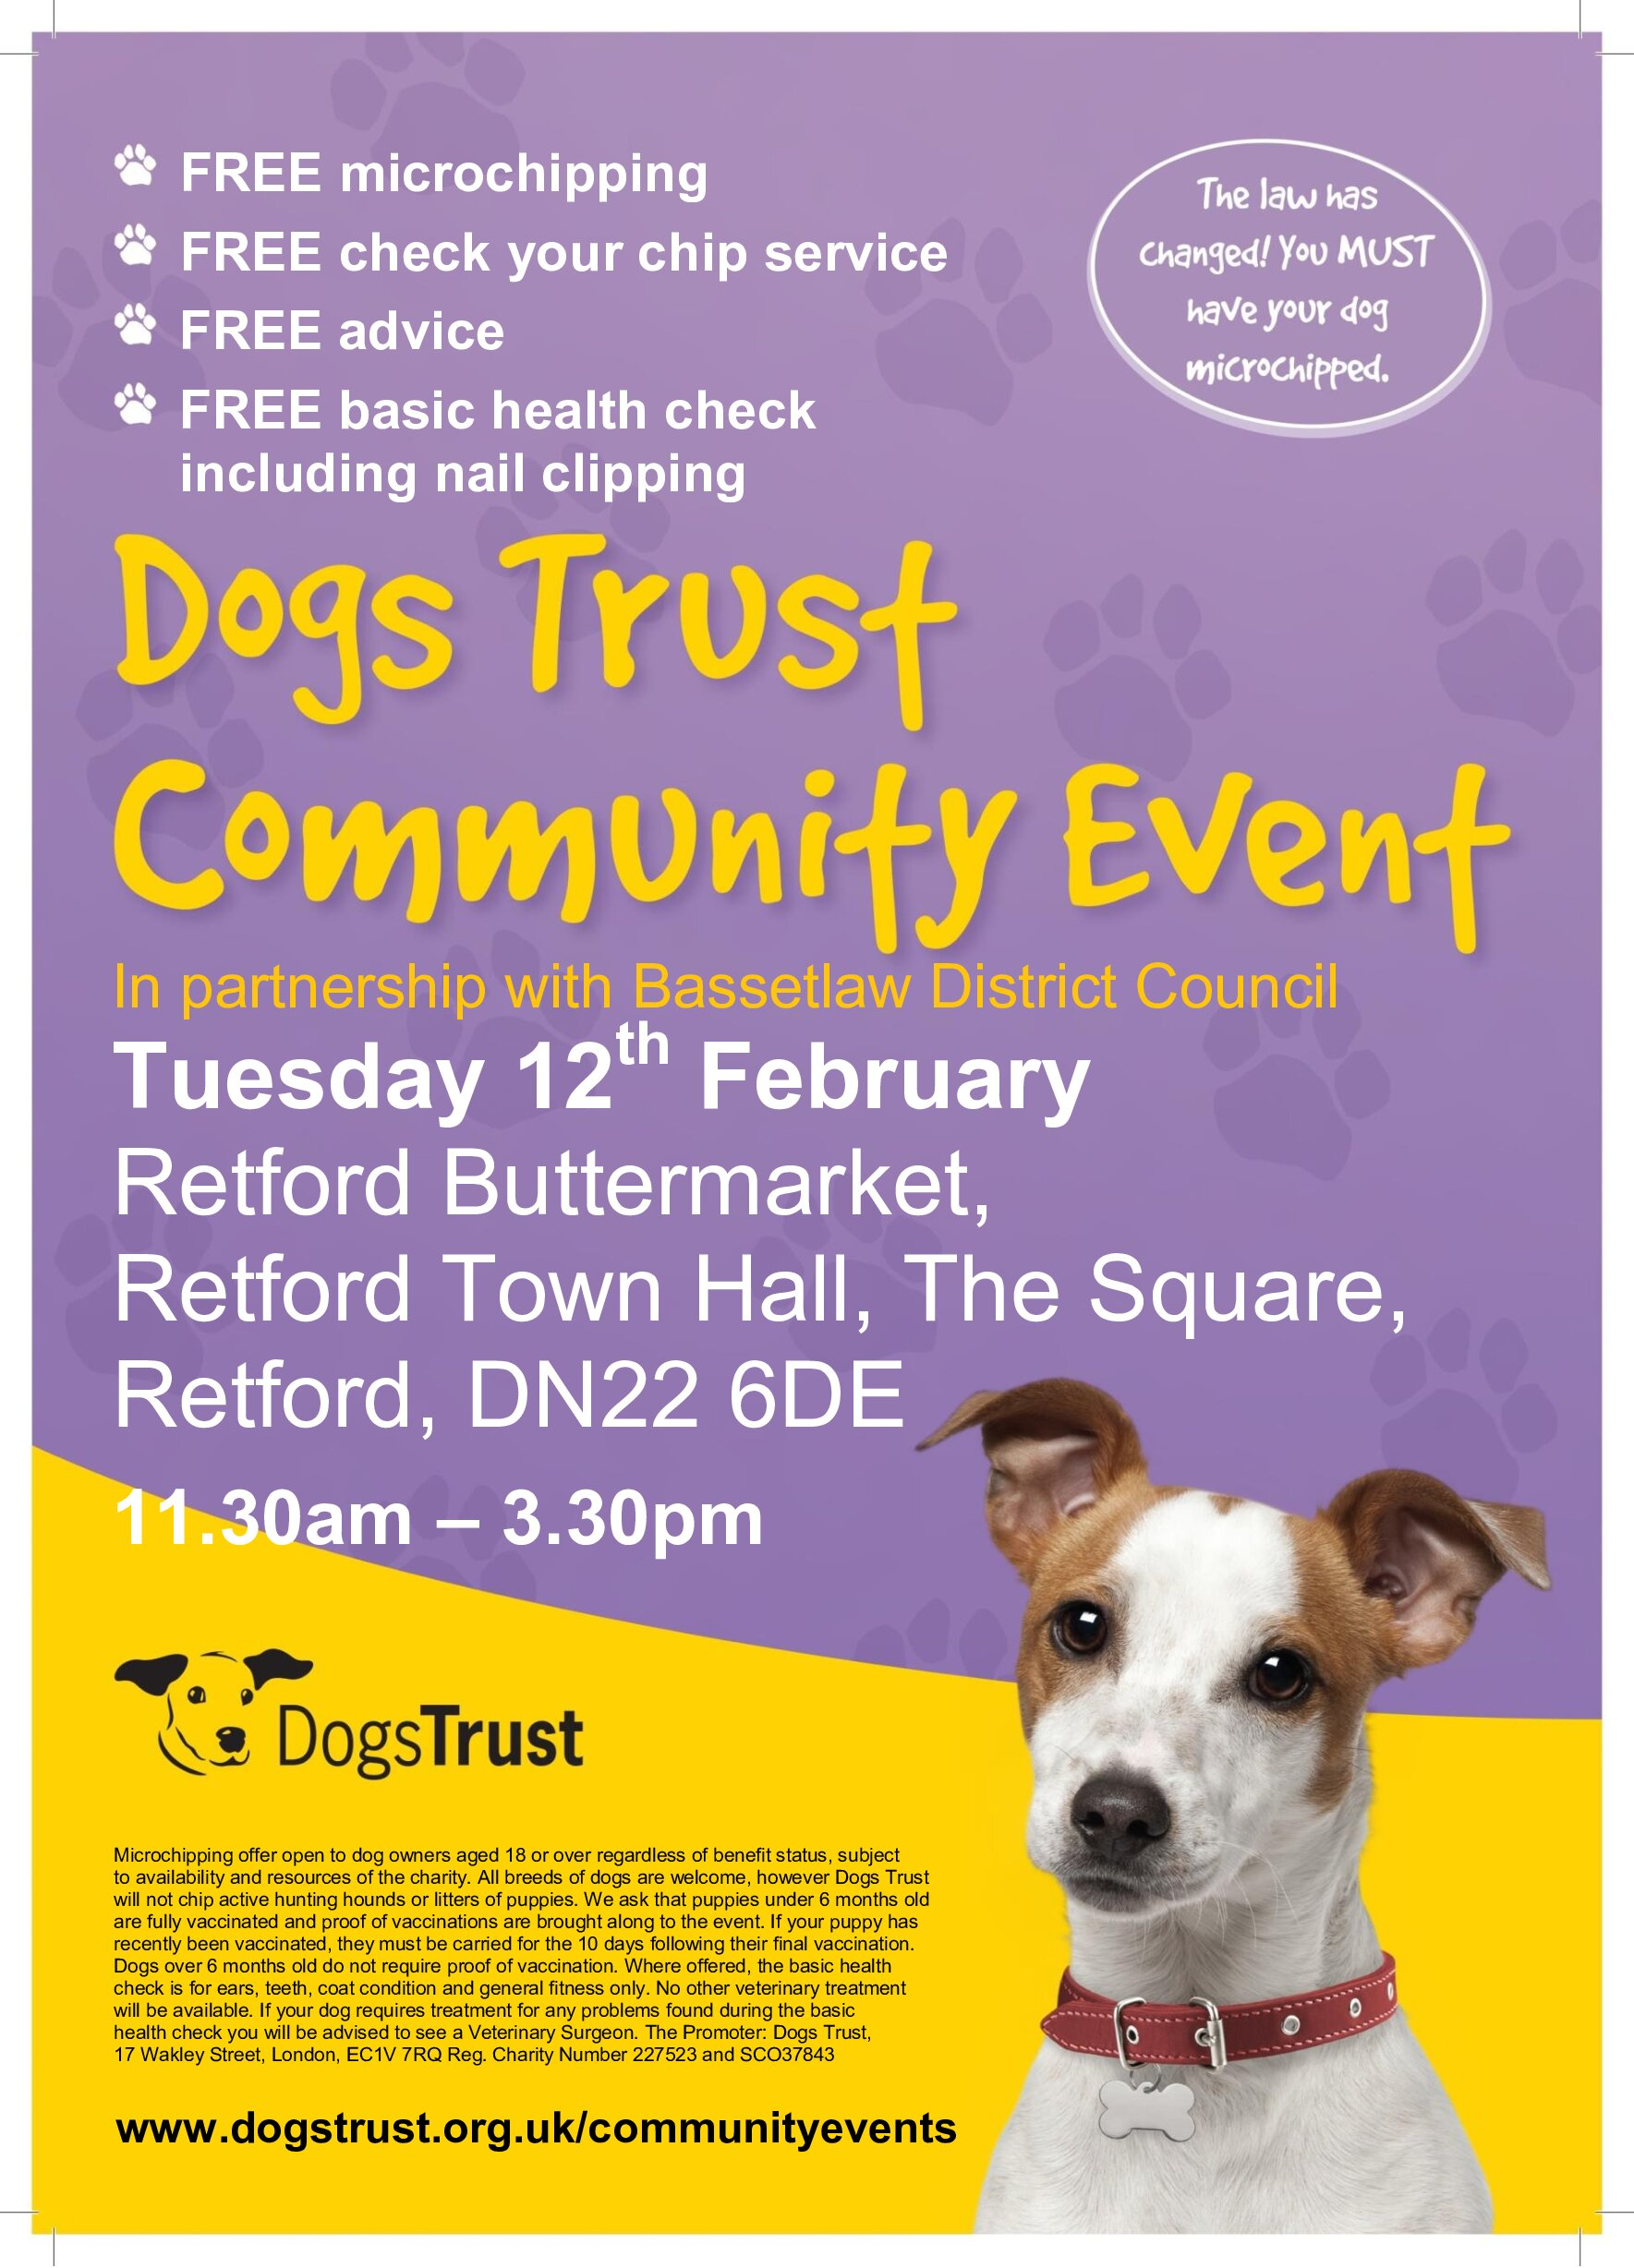 Dogs Trust Community Event event.